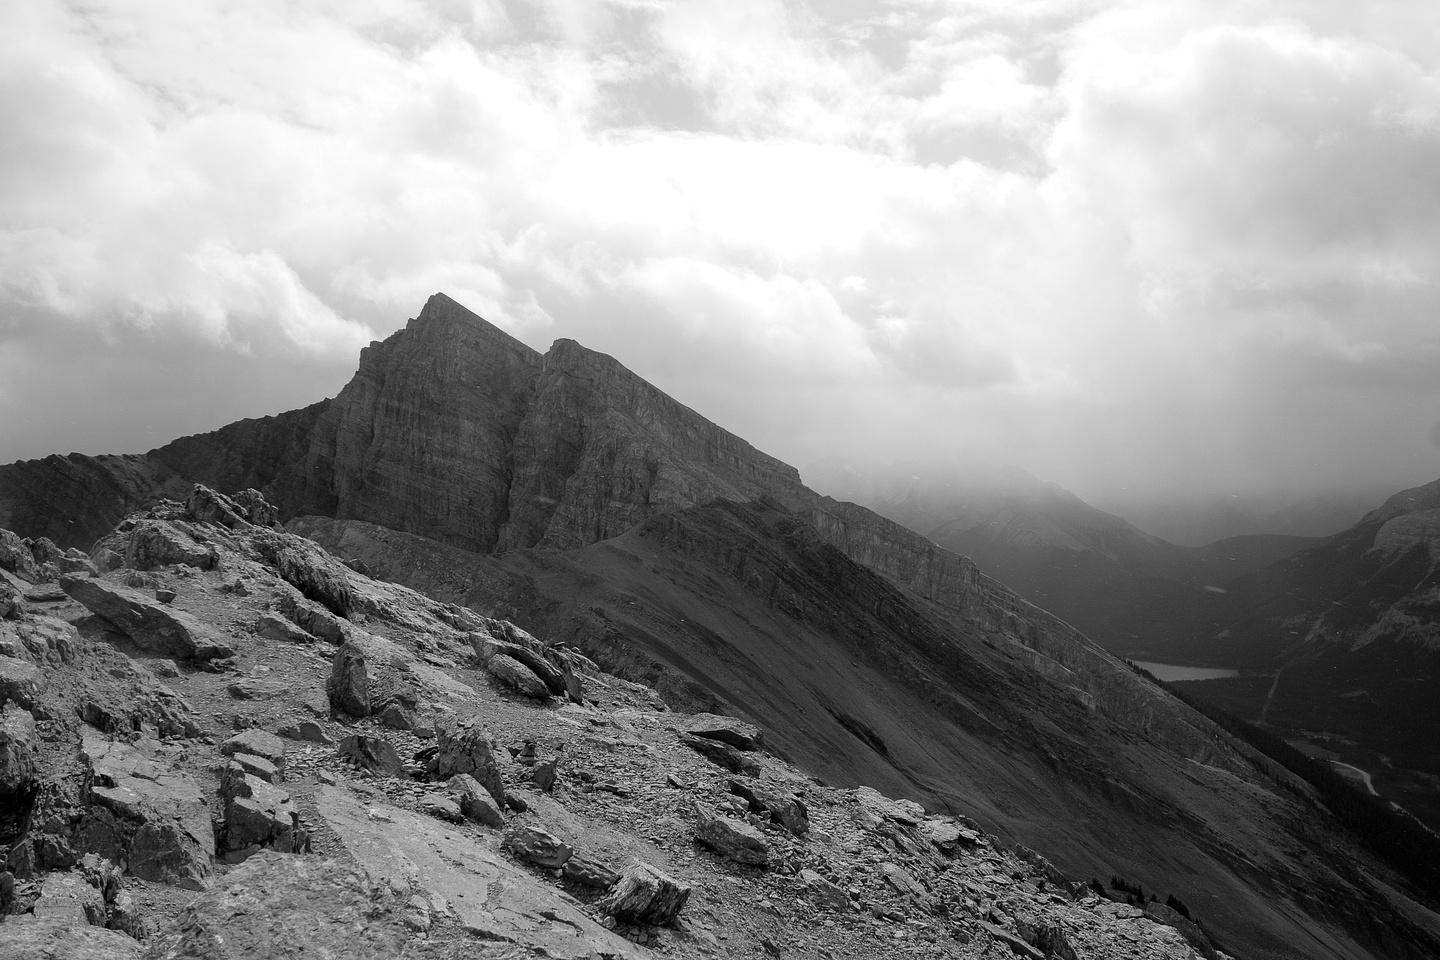 Looking back at Miners Peak from the summit of Ha Ling as the weather continues to suck. But it gave dramatic photos at least!